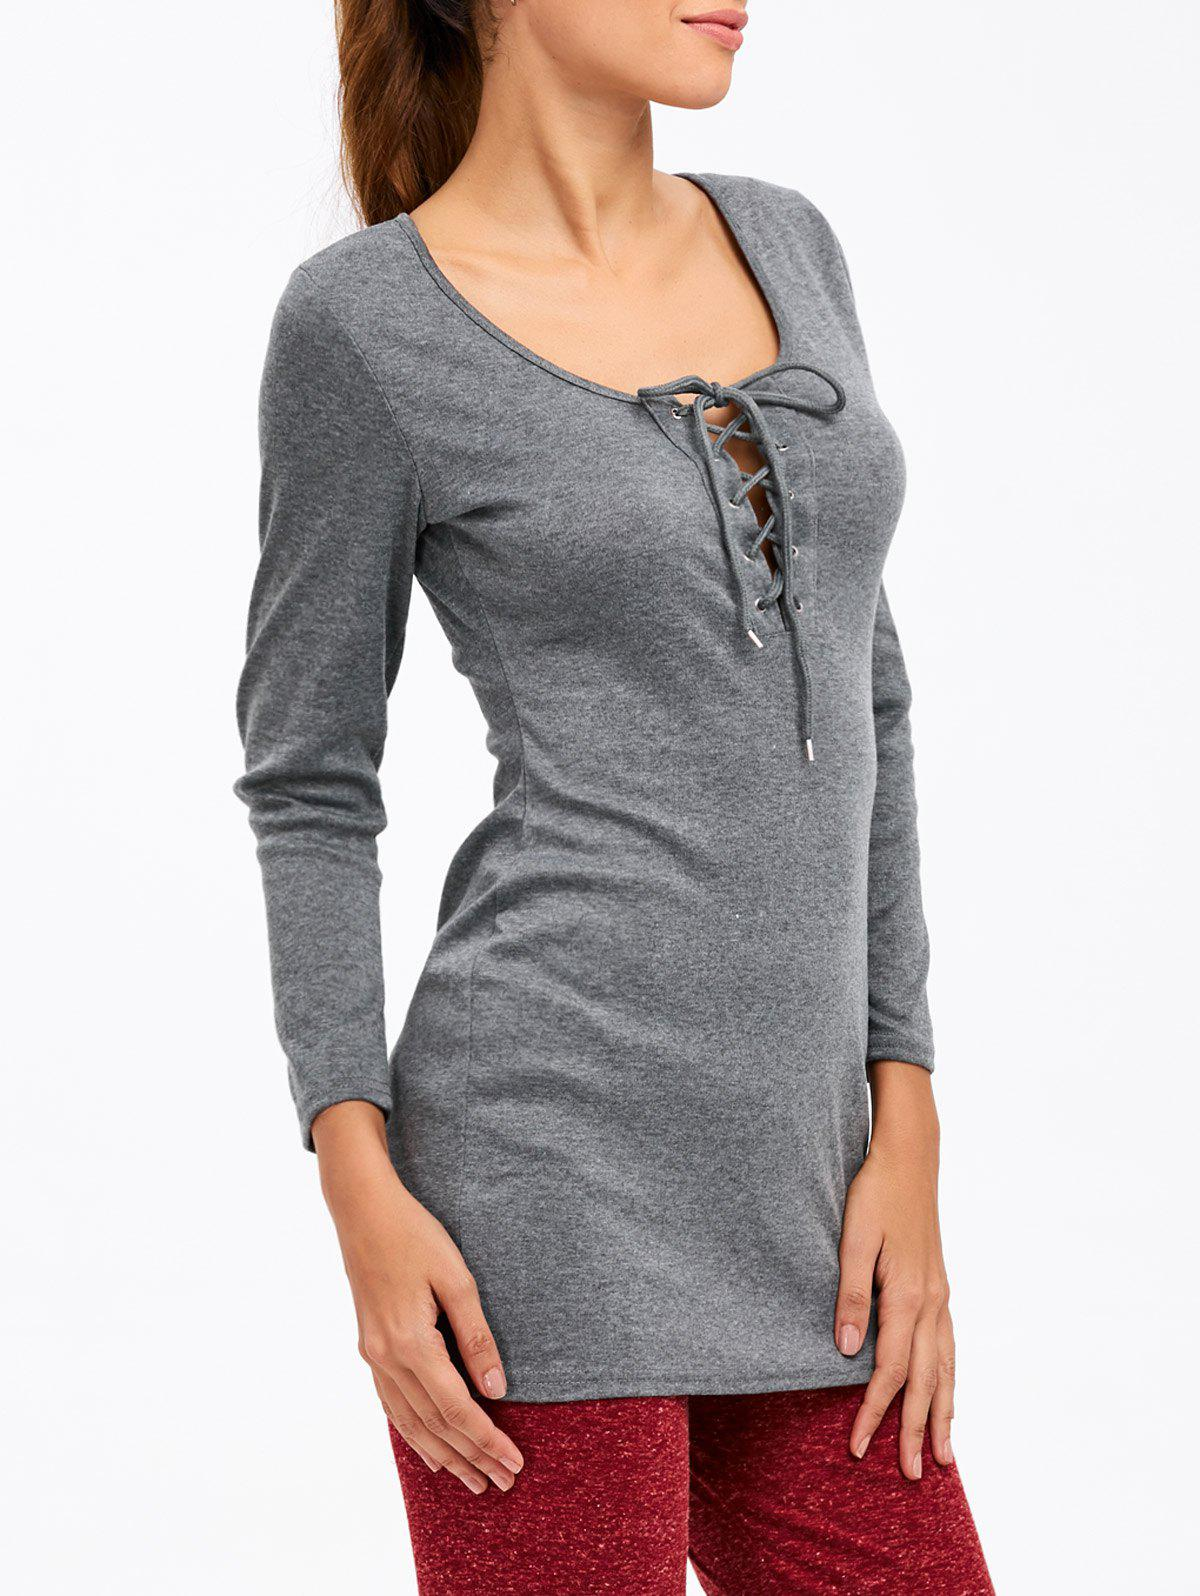 Shop Classic Lace Up Slimming Tee